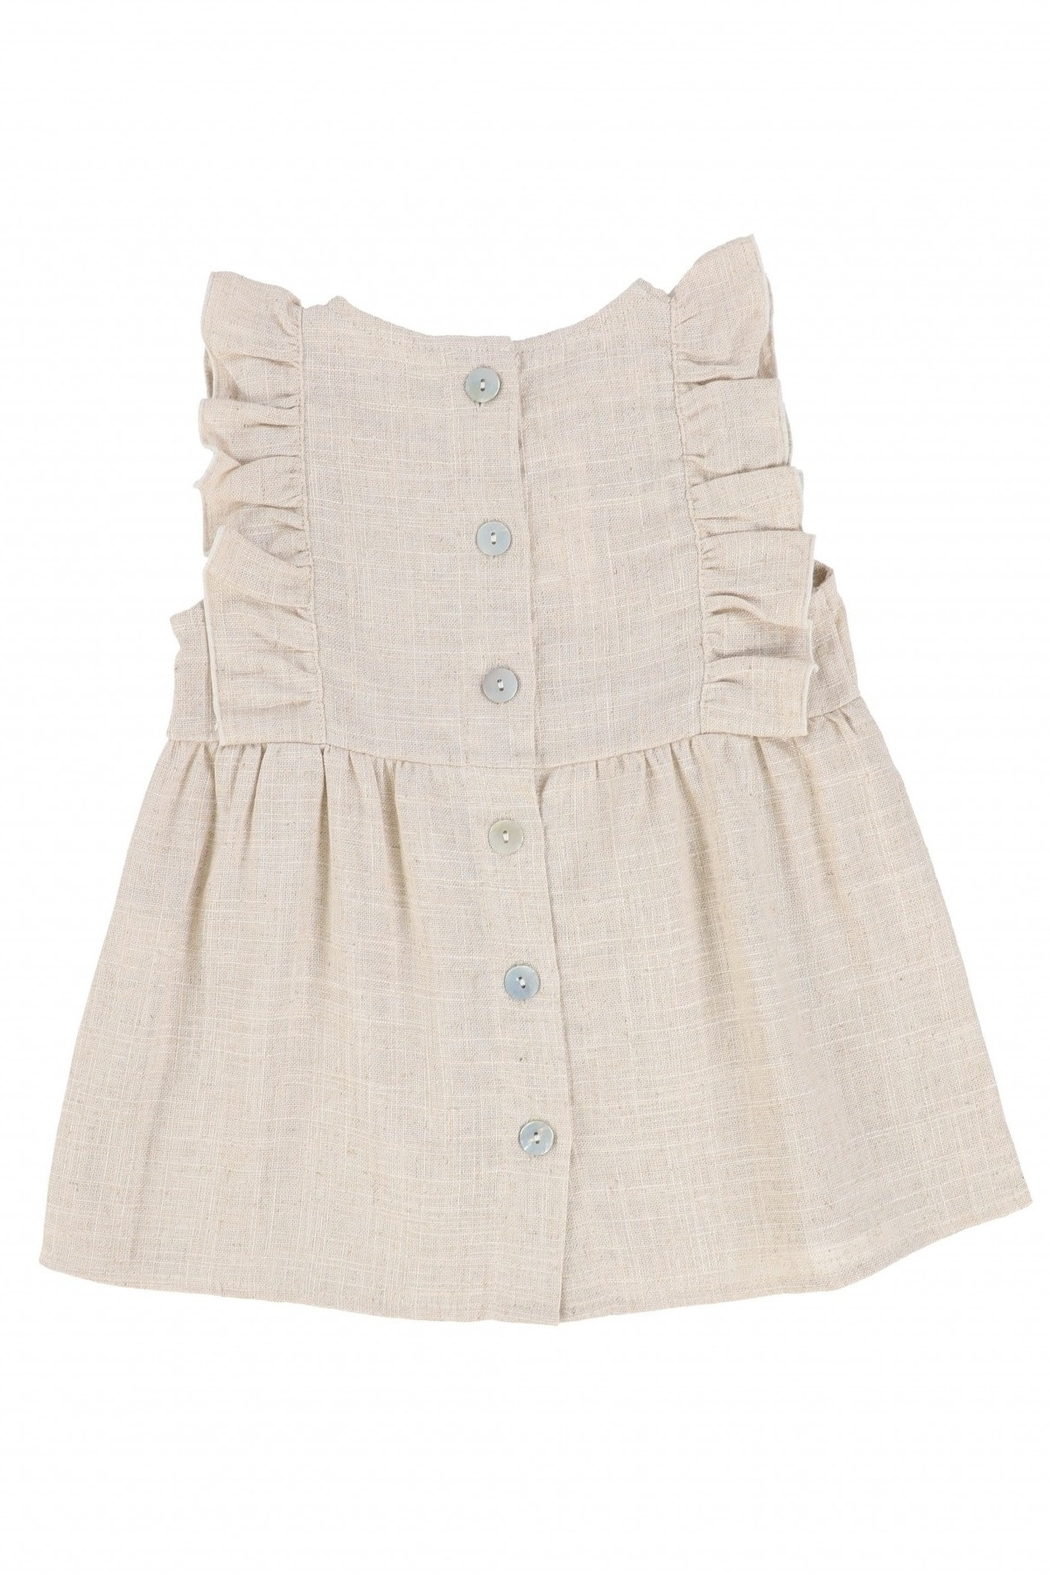 Latte Baby and Child | Girls' Ruffled metallic jumper - Front Full Image